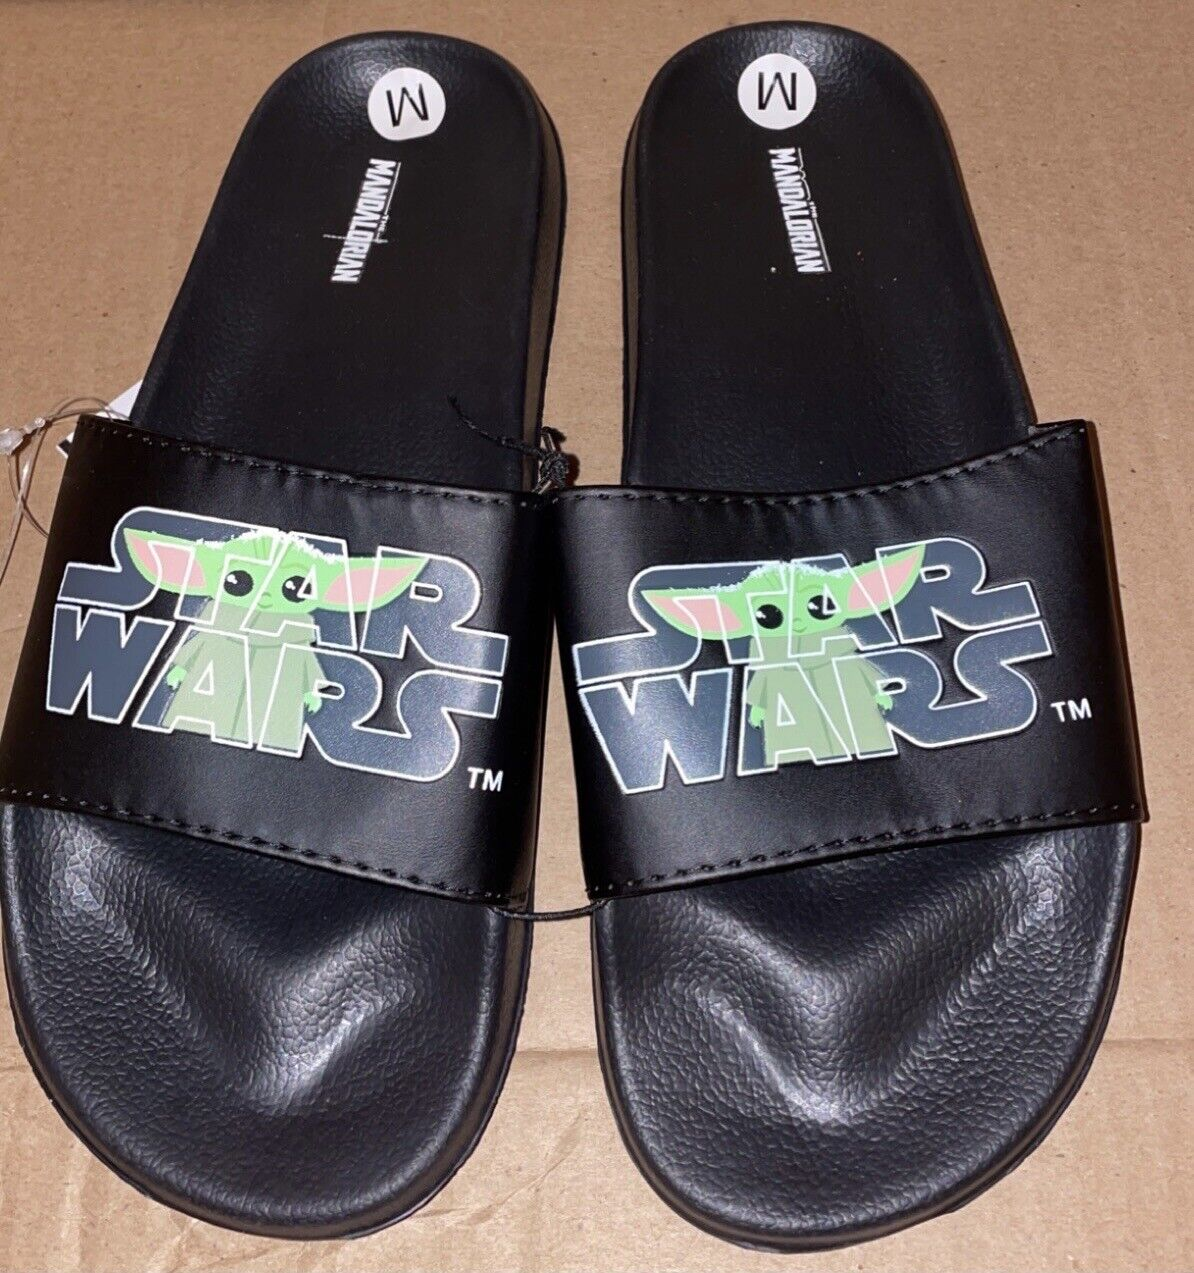 STAR WARS BABY YODA Slides Sandals Mens Size LARGE Size 10/11 New